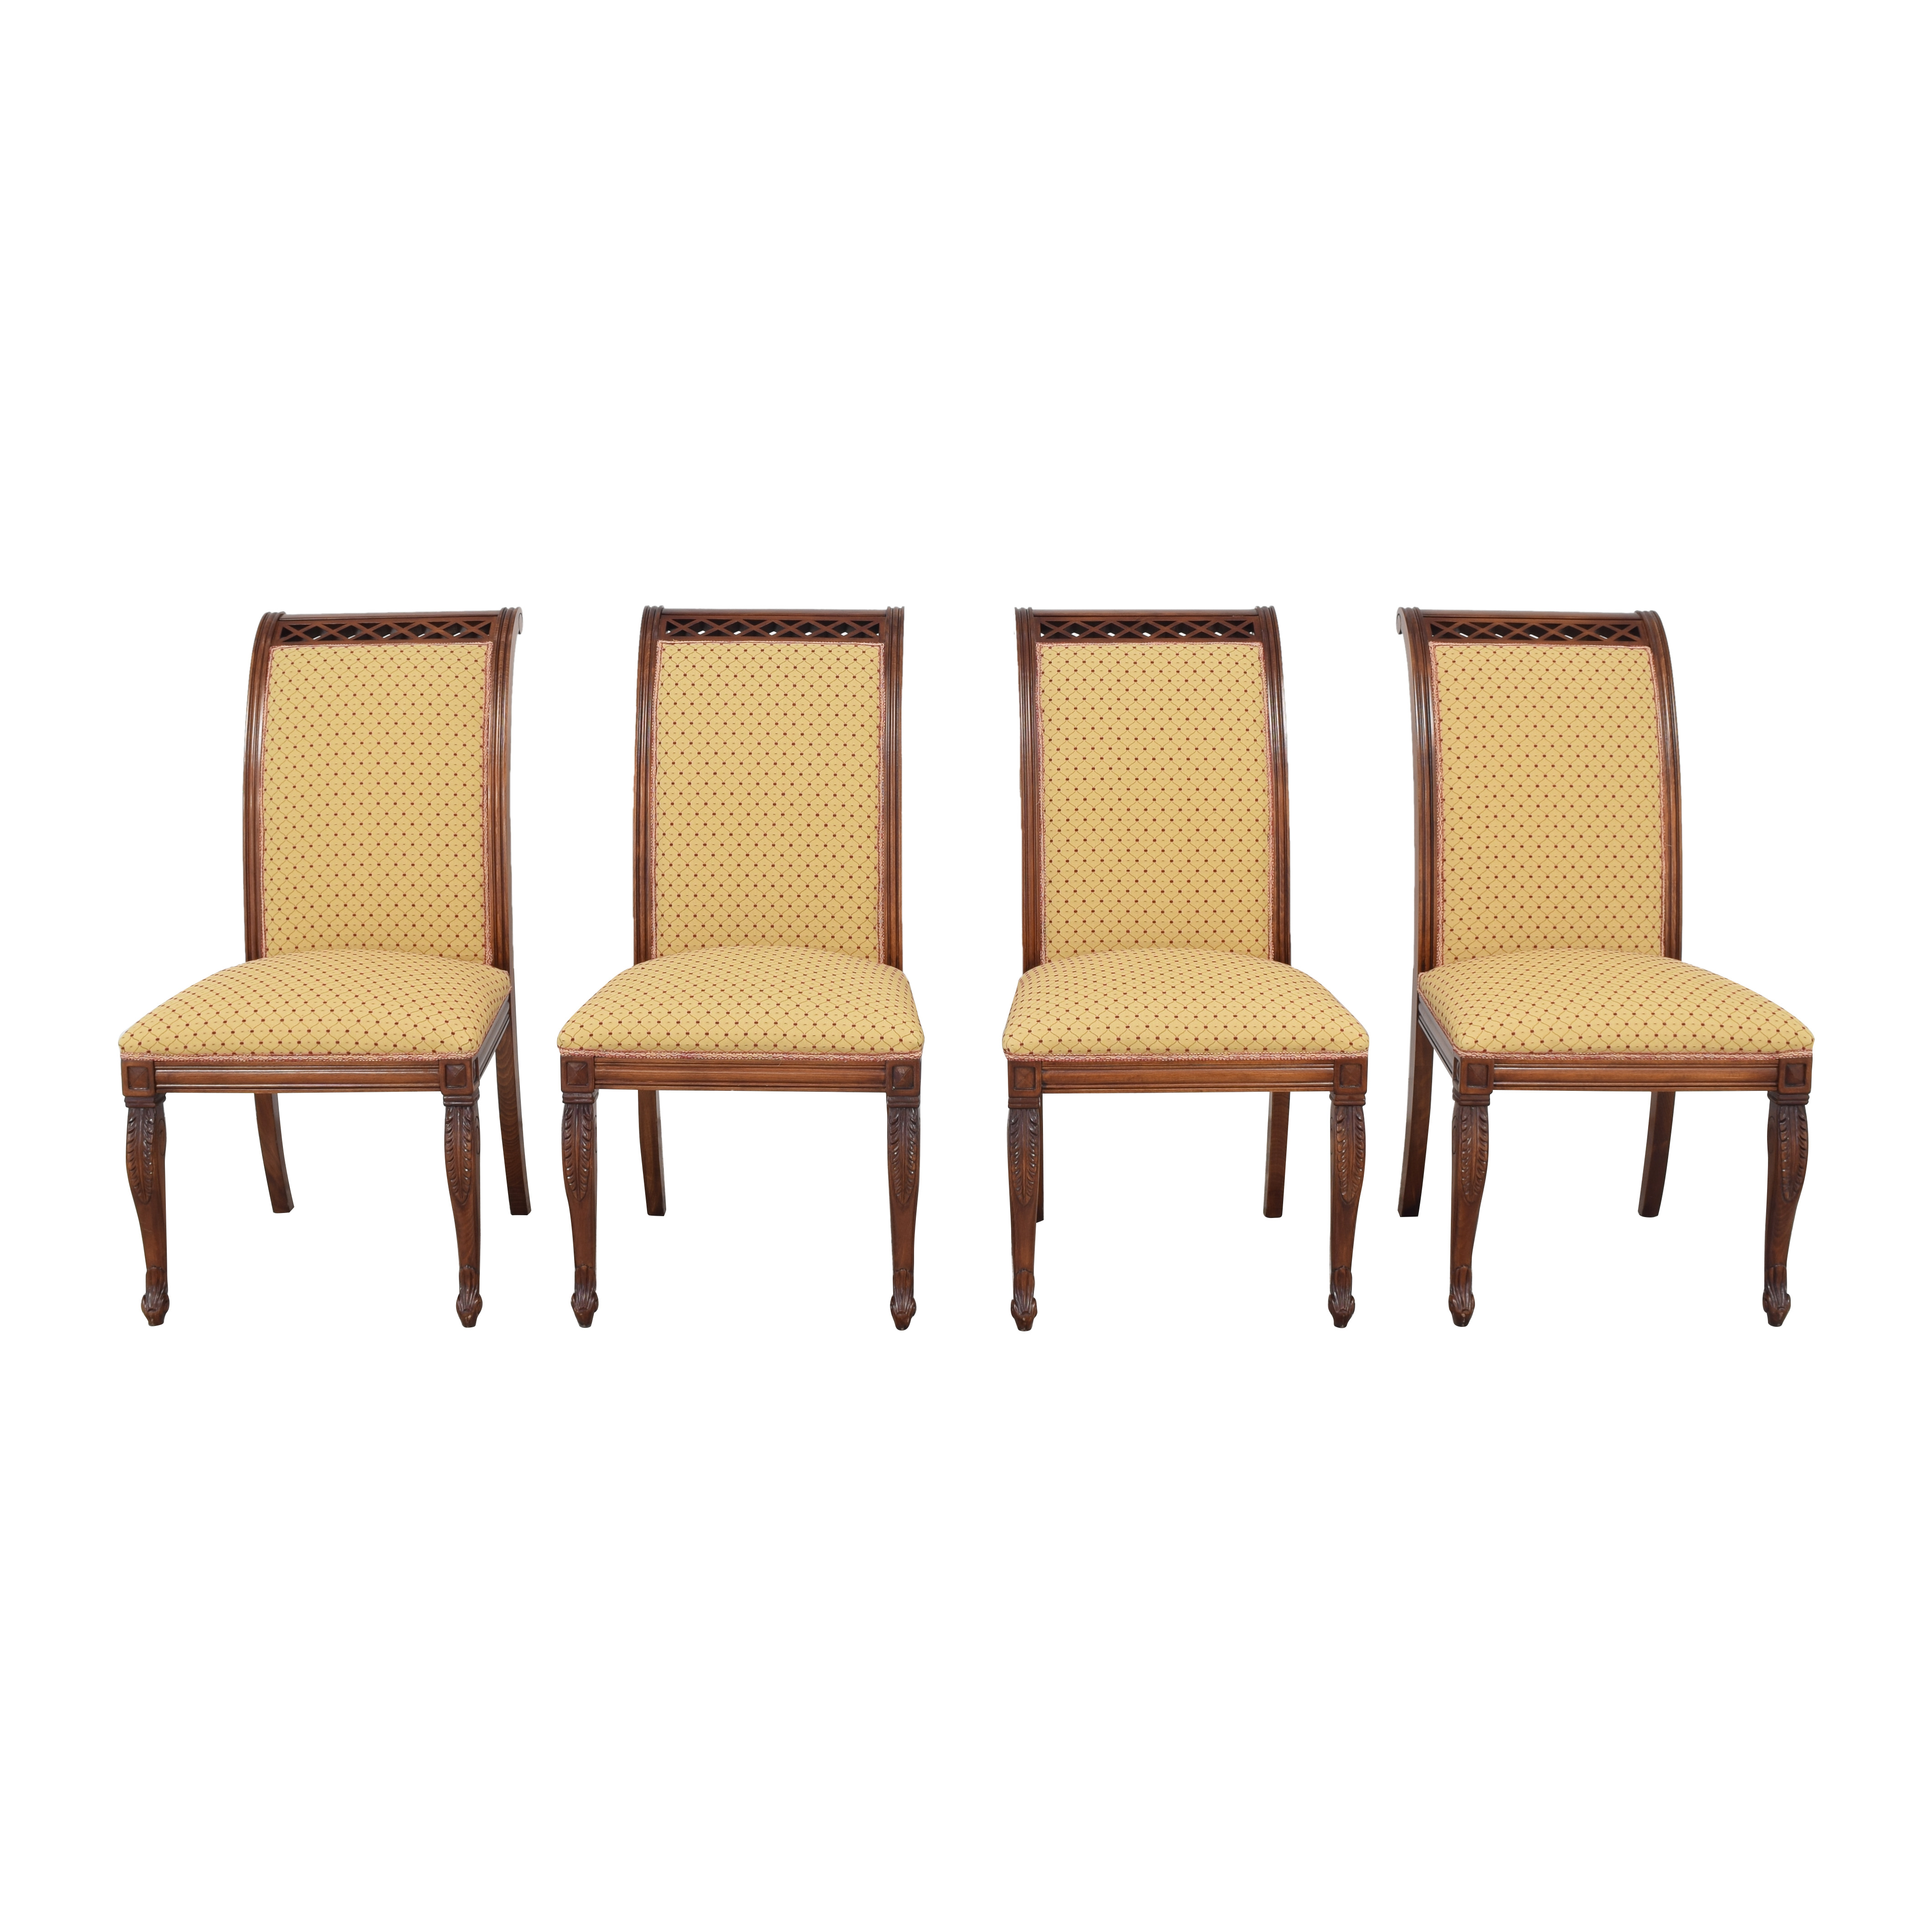 KPS Furnishings KPS Furnishings Custom Dining Chairs